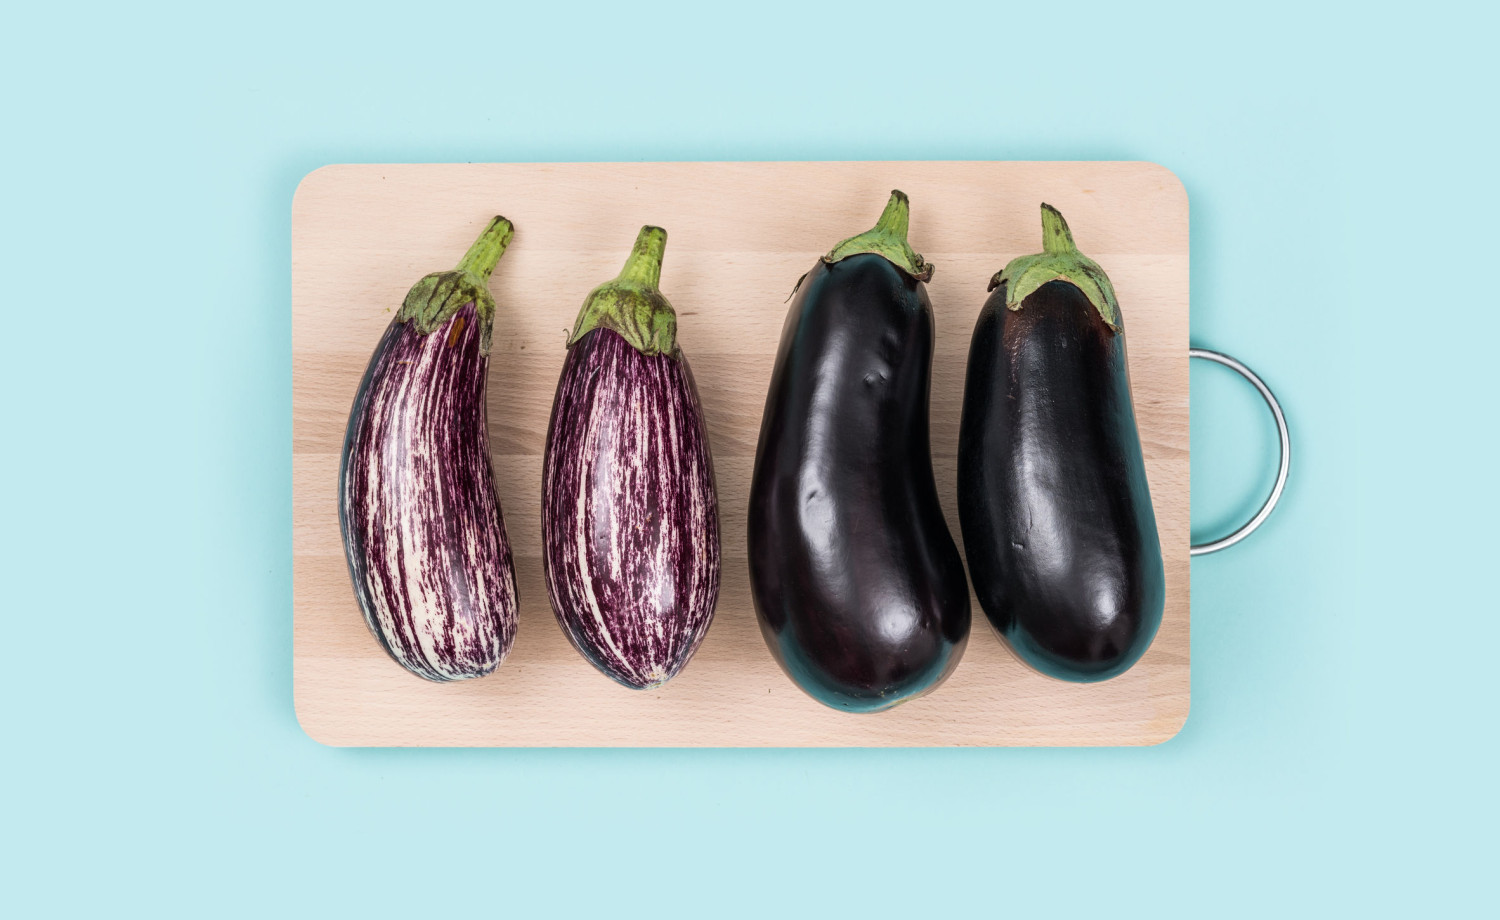 Fresh eggplants - aubergines